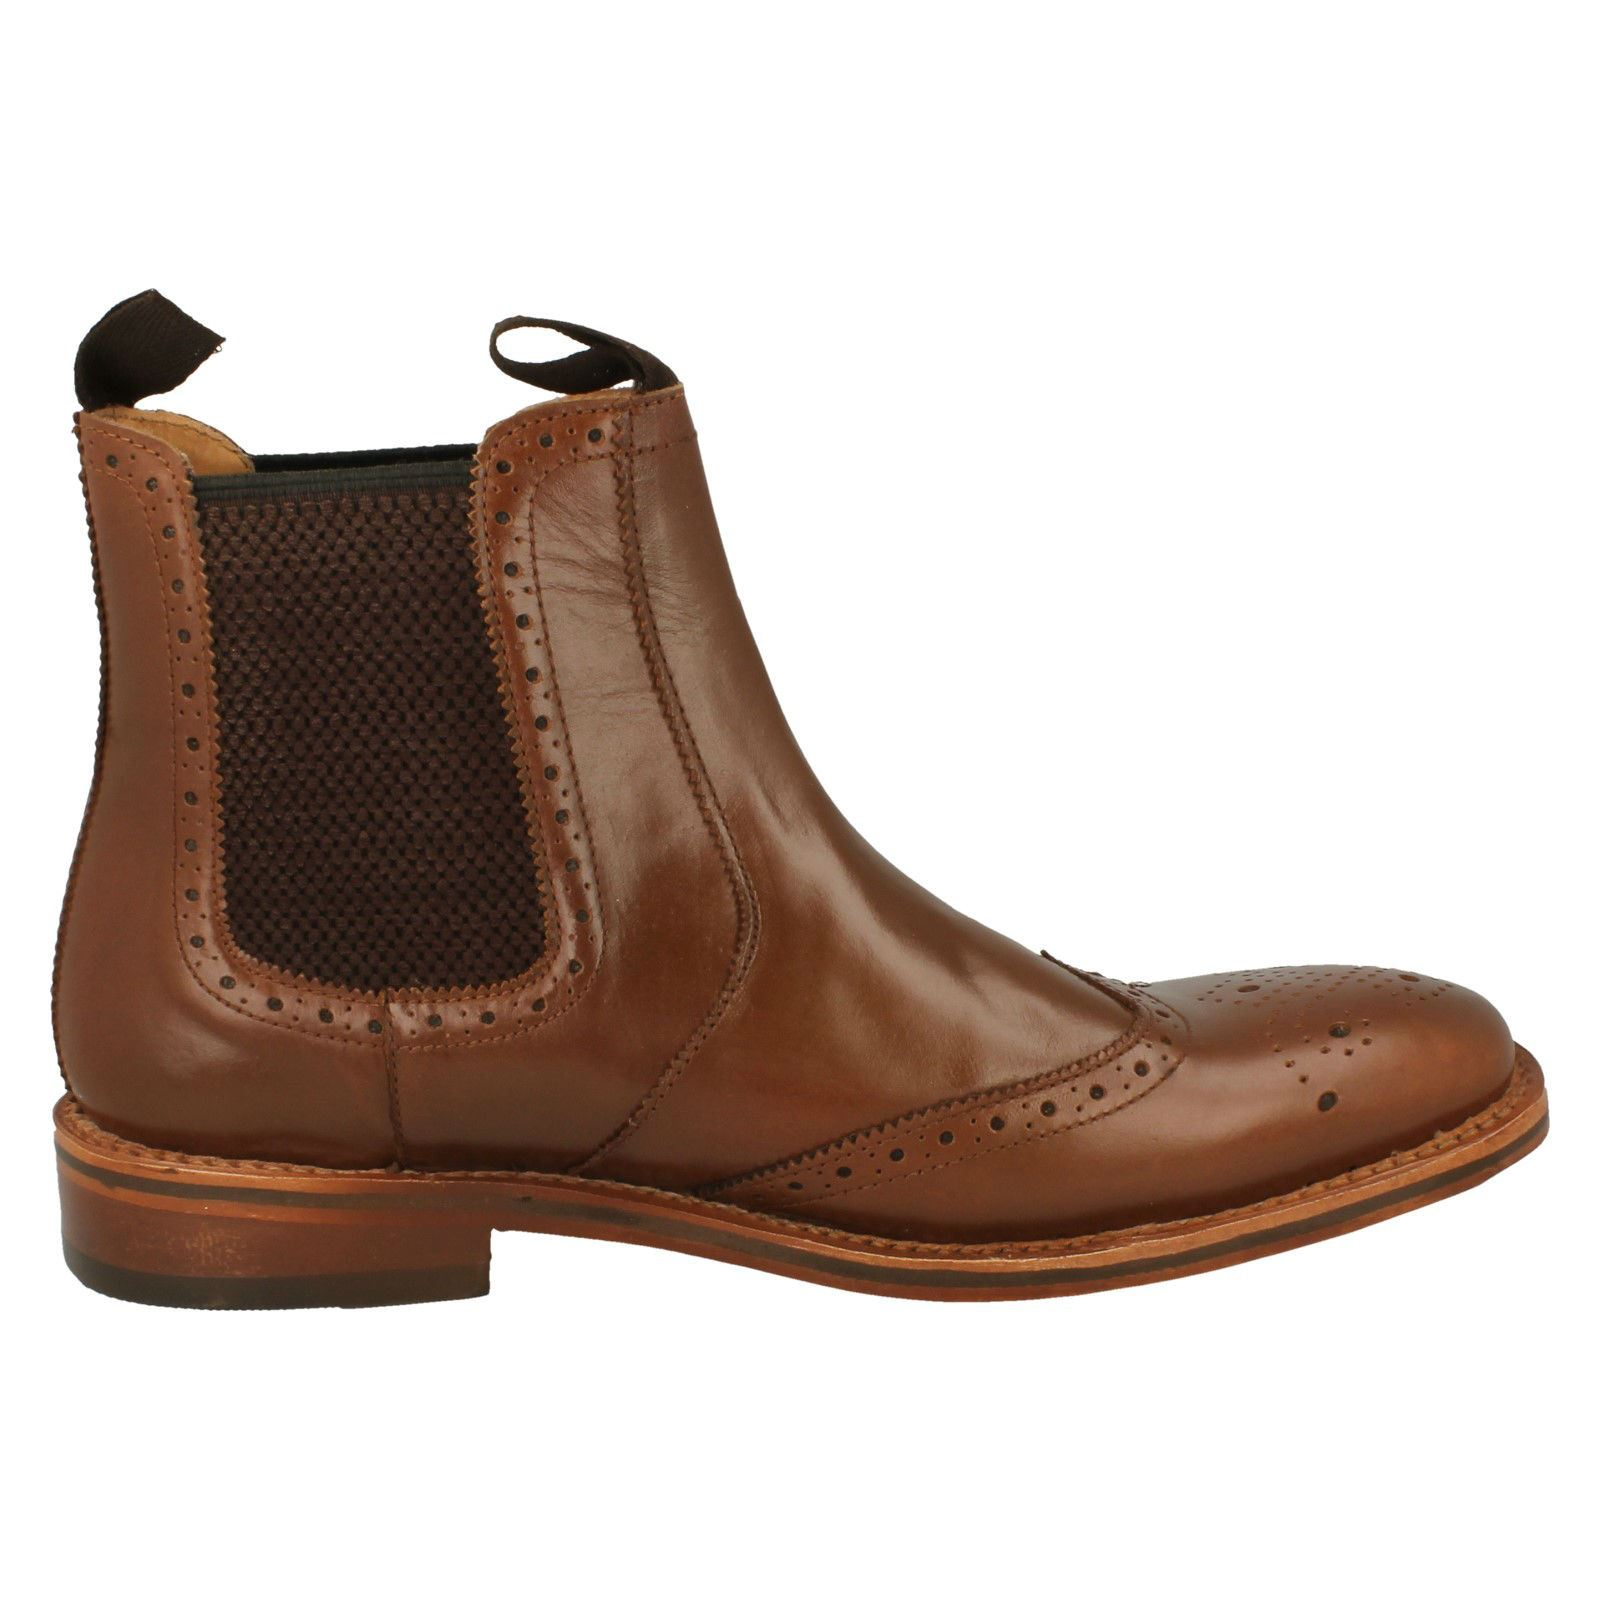 Mens-Catesby-Ankle-Boots-MCATESCW158T thumbnail 5